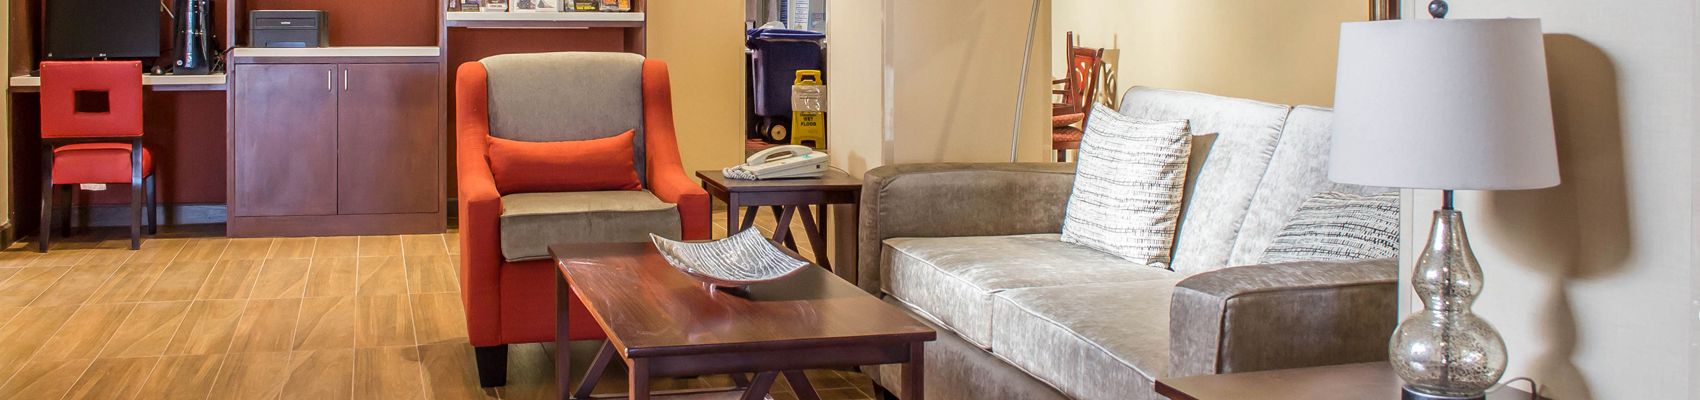 Services and Amenities of Flagstaff, Arizona Hotel